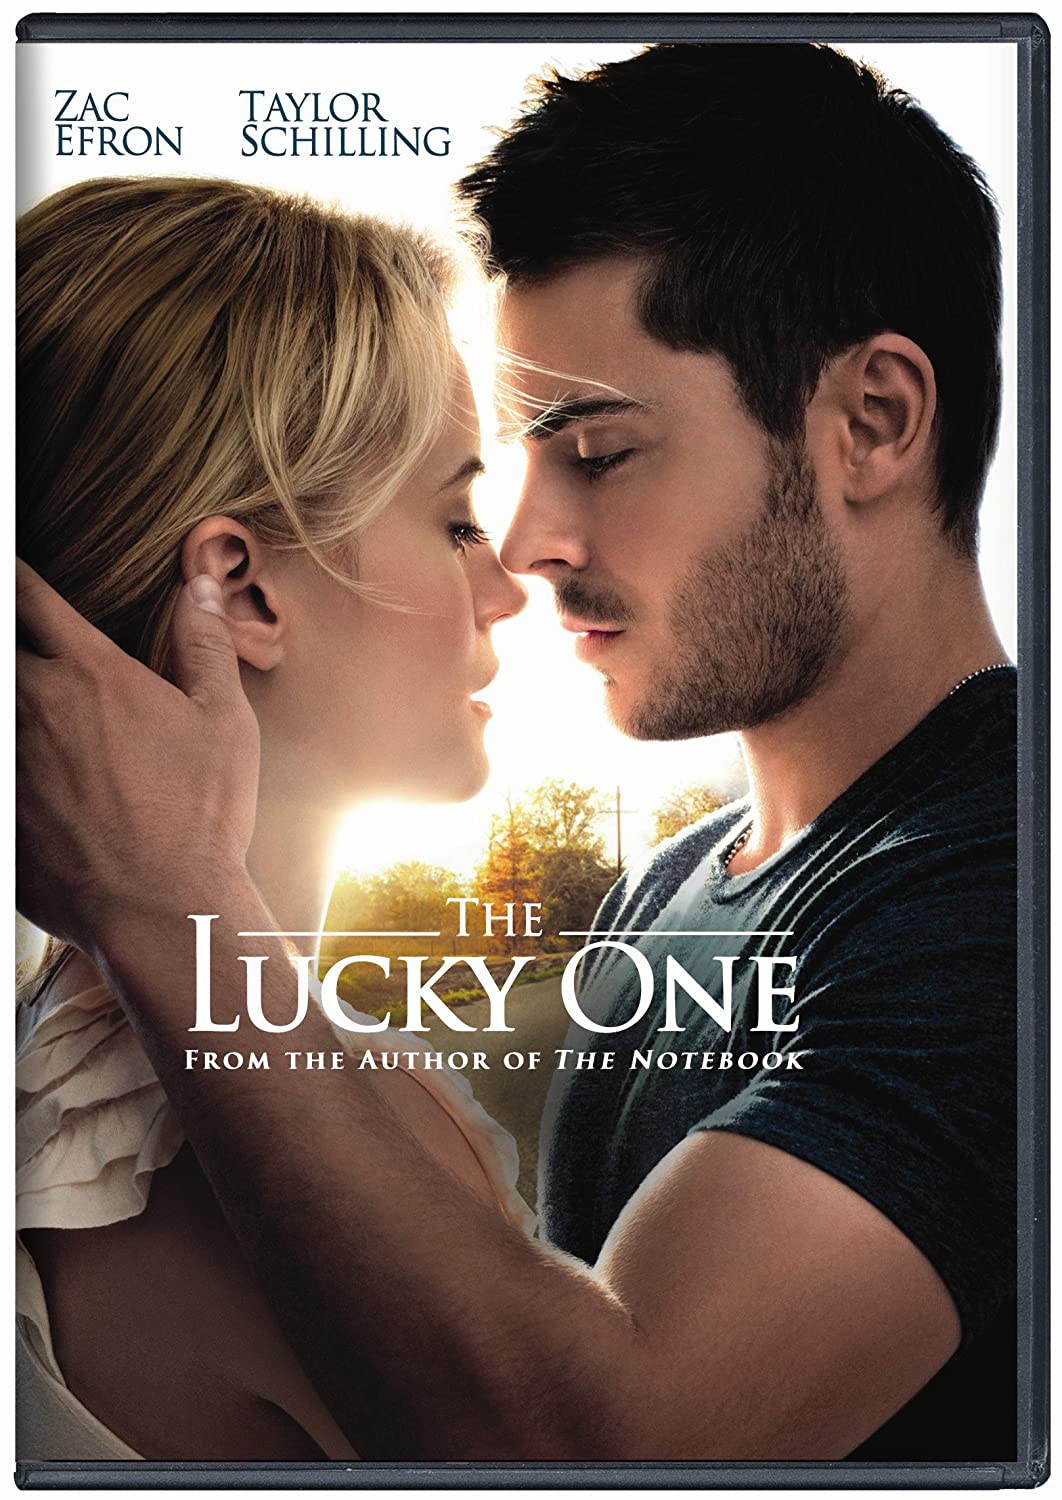 the lucky one dvd uv copy amazon co uk zac efron the lucky one dvd uv copy 2012 amazon co uk zac efron taylor schilling dvd blu ray